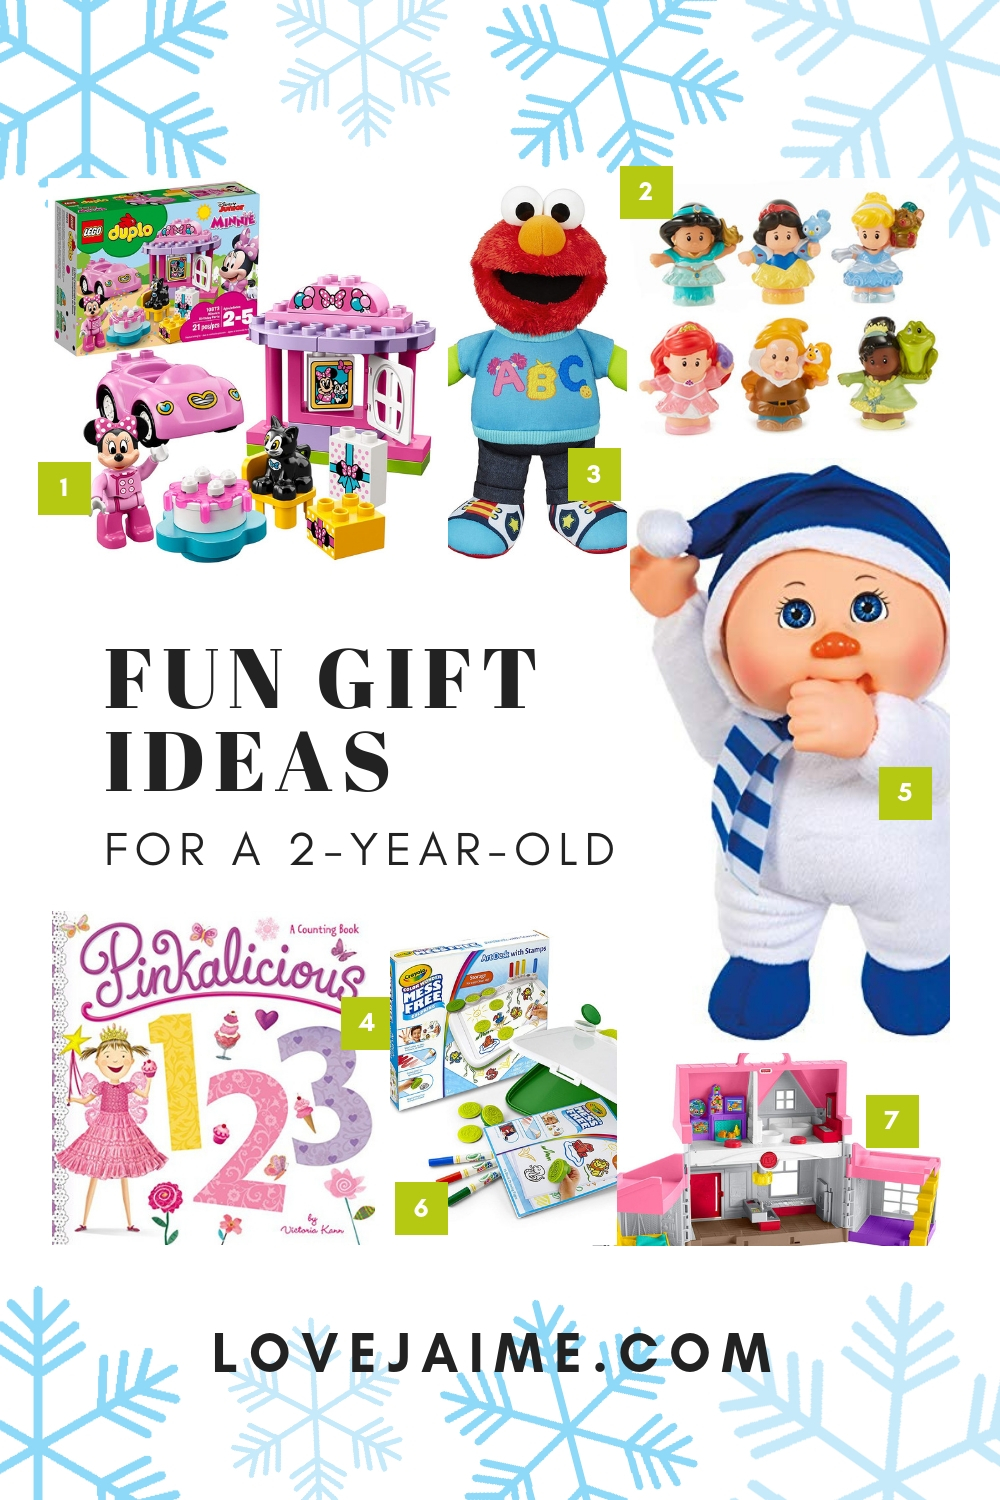 Holiday gift guide for a 2-year-old. Amazon is giving back to Toys for Tots, when you donate to the charity through Alexa. It's simple and doubles your donations. Check out this list of toys for ideas to get started on your donation! #ad #DeliveringSmiles #giftguide